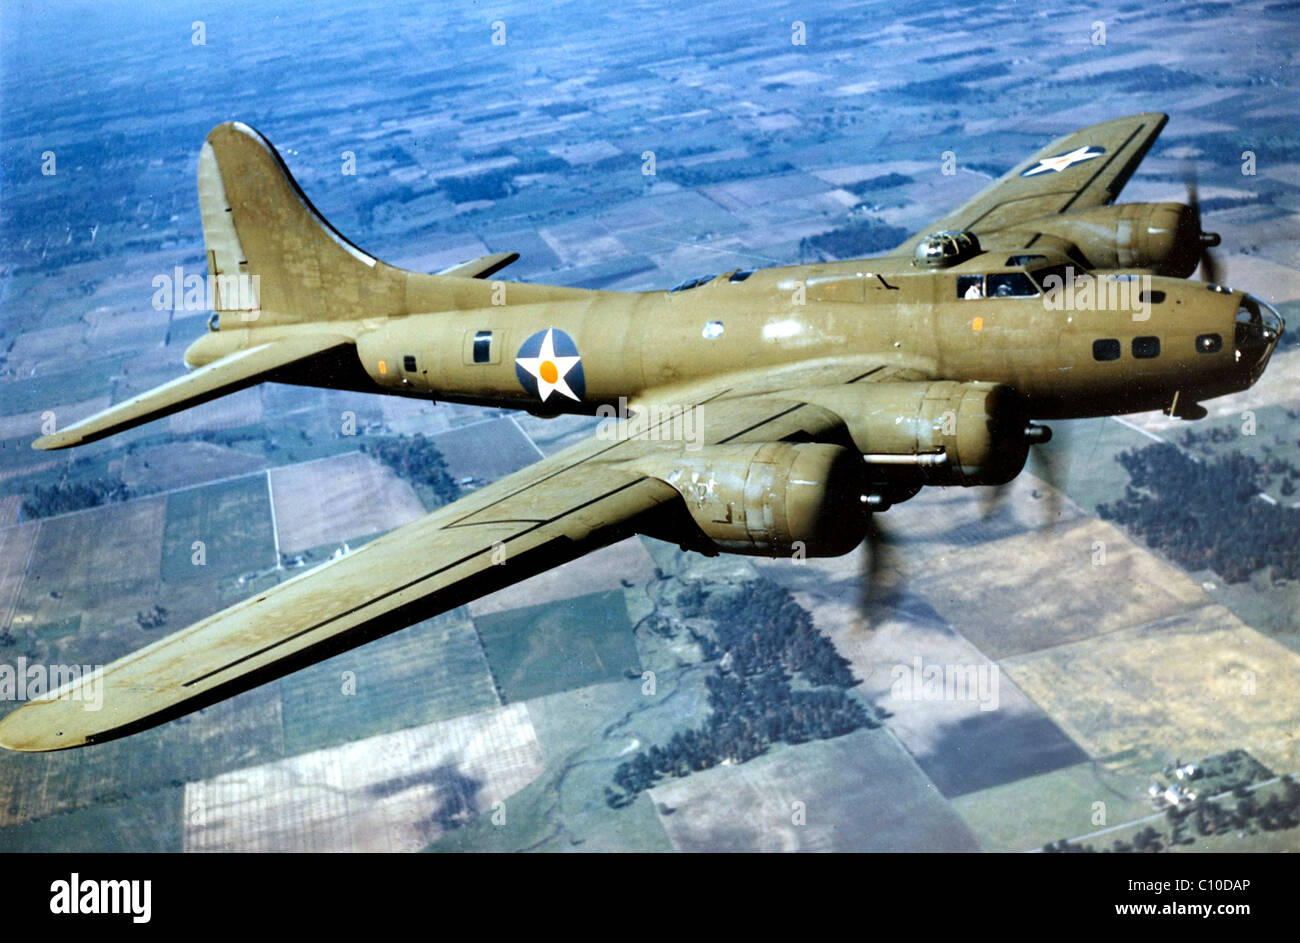 B-17 Flying Fortress, Boeing B-17 Flying Fortress - Stock Image